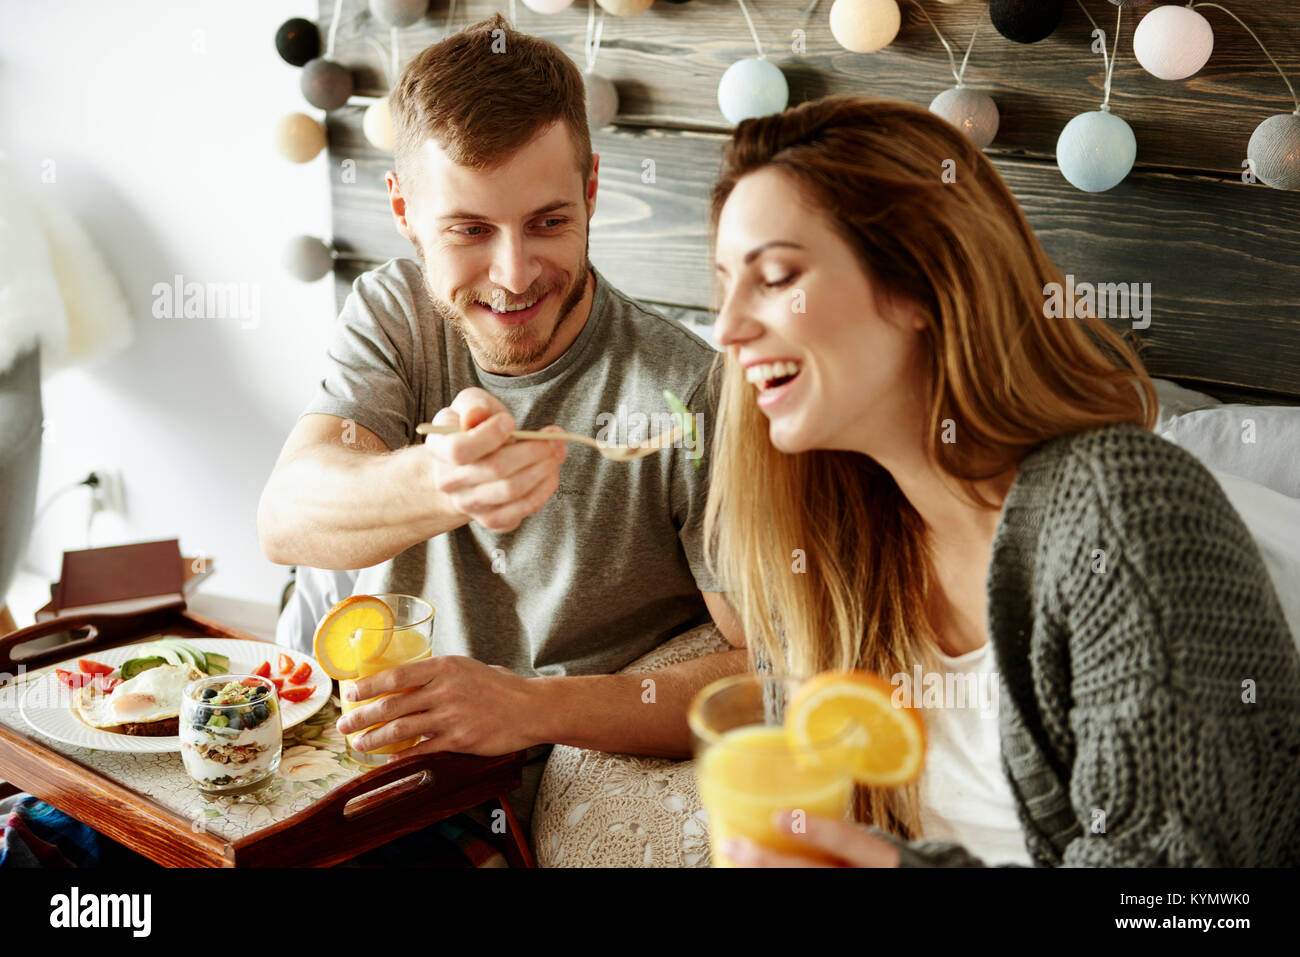 Man sharing breakfast with woman - Stock Image